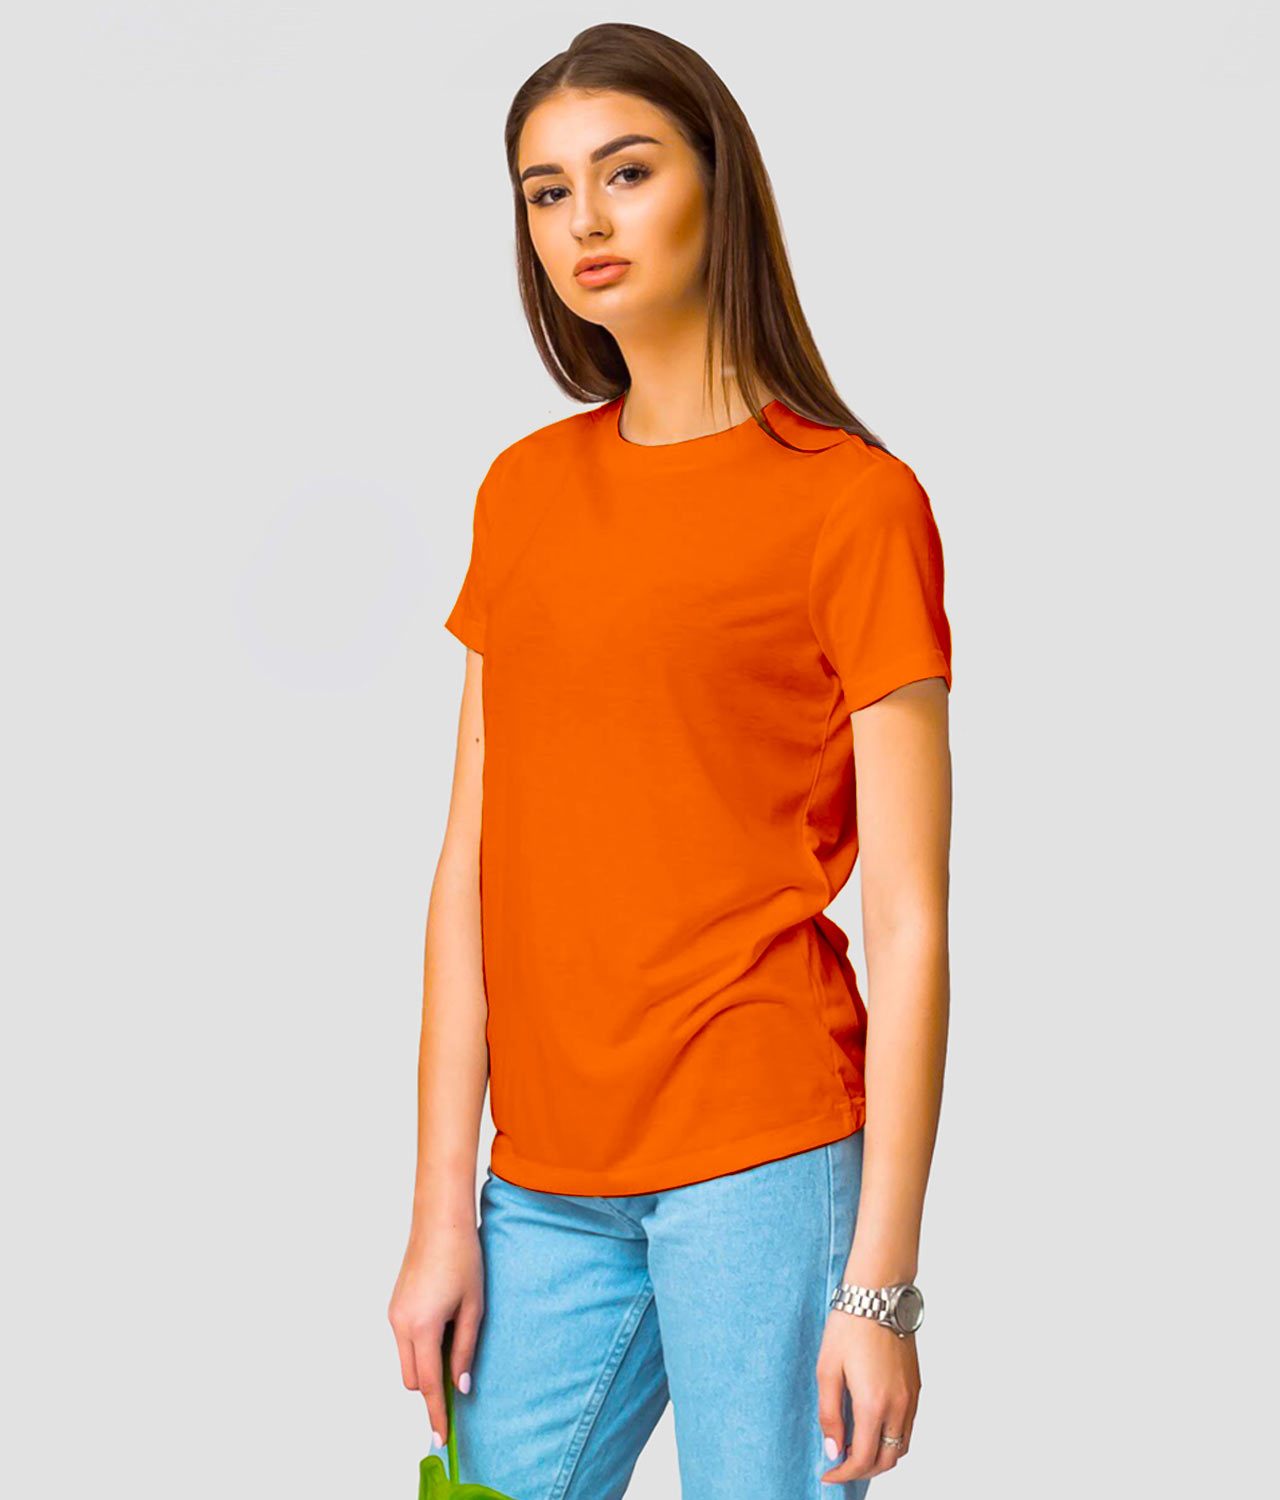 Buy Low Price Offer On T shirts For Women | RagaFab